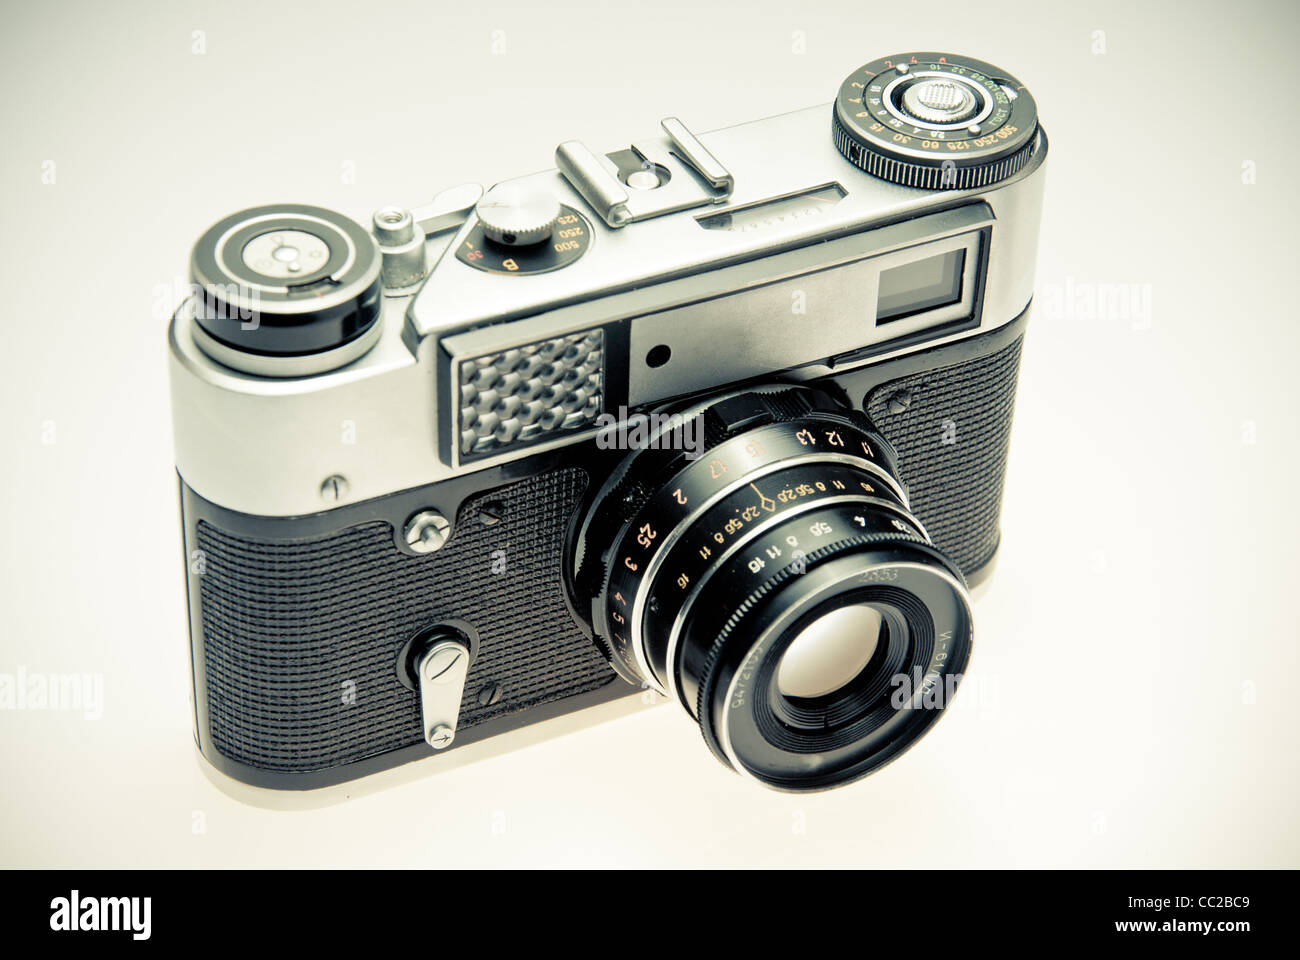 Old photography camera in vintage style over light background - Stock Image